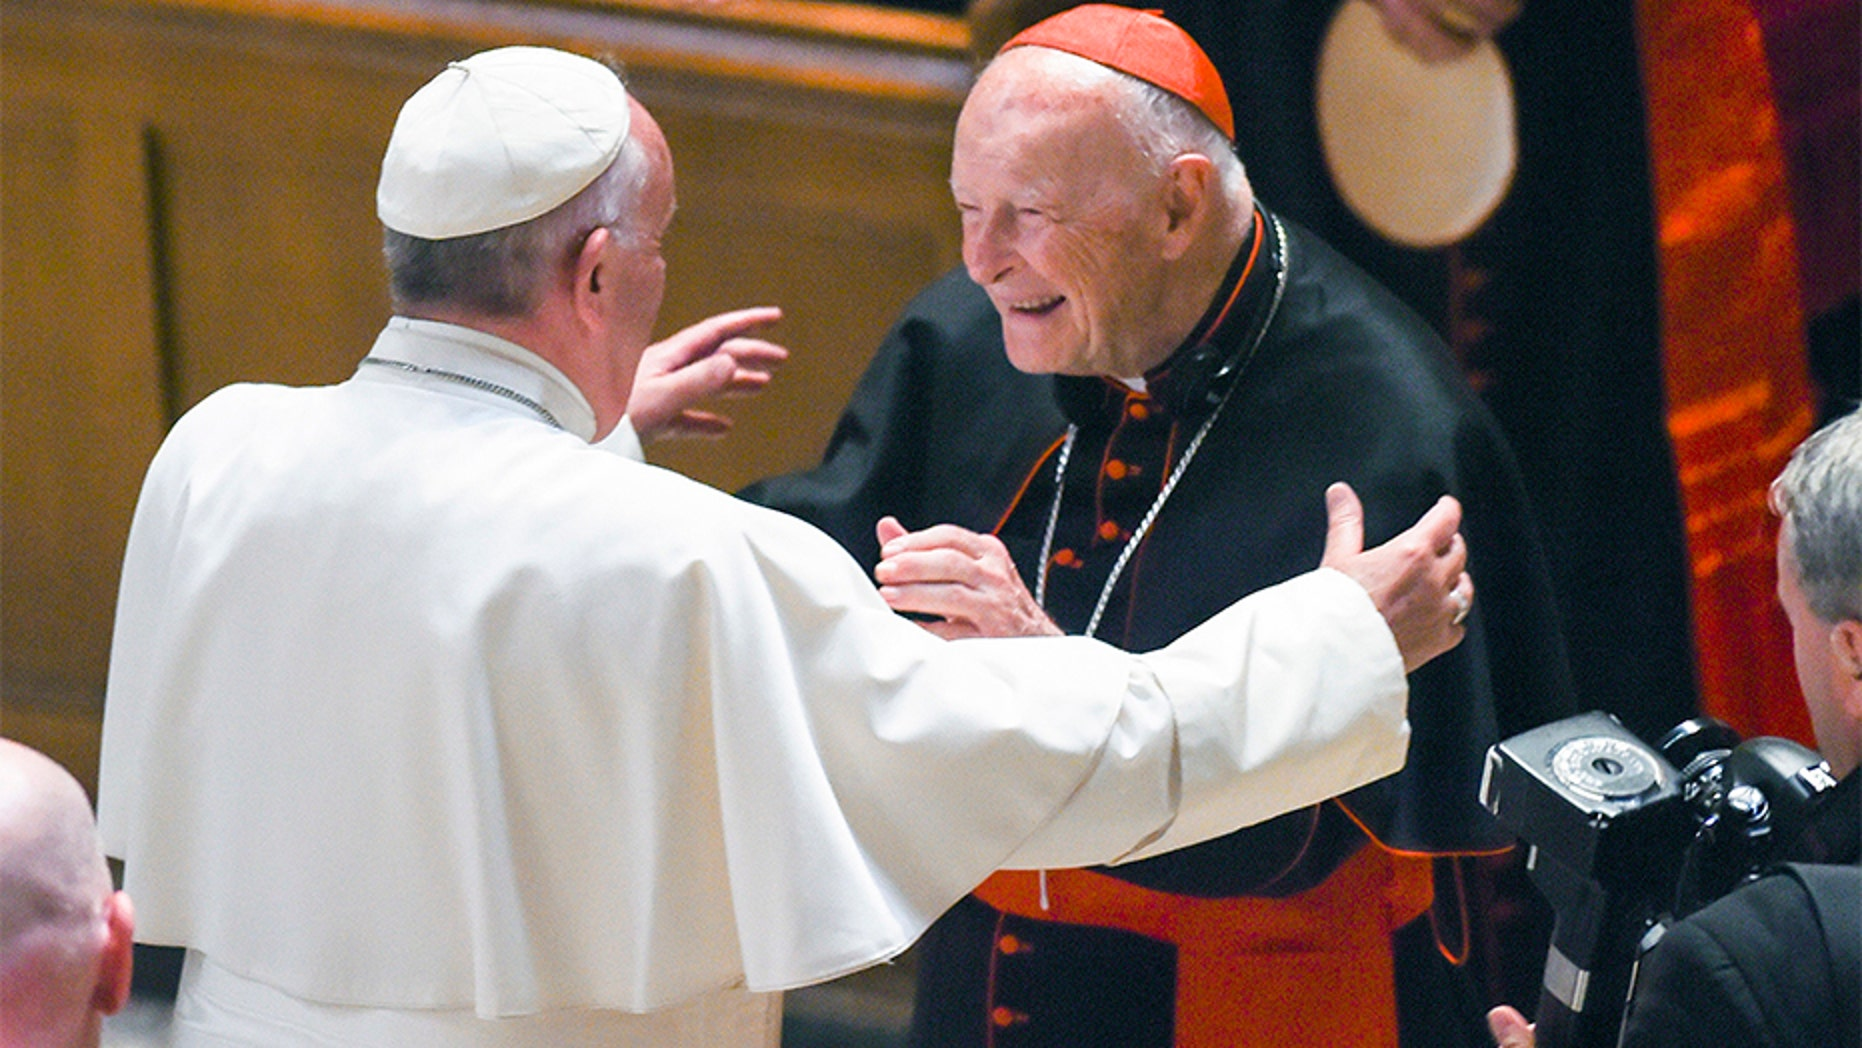 Pope Francis greets Cardinal Theodore McCarrick in this undated photo.